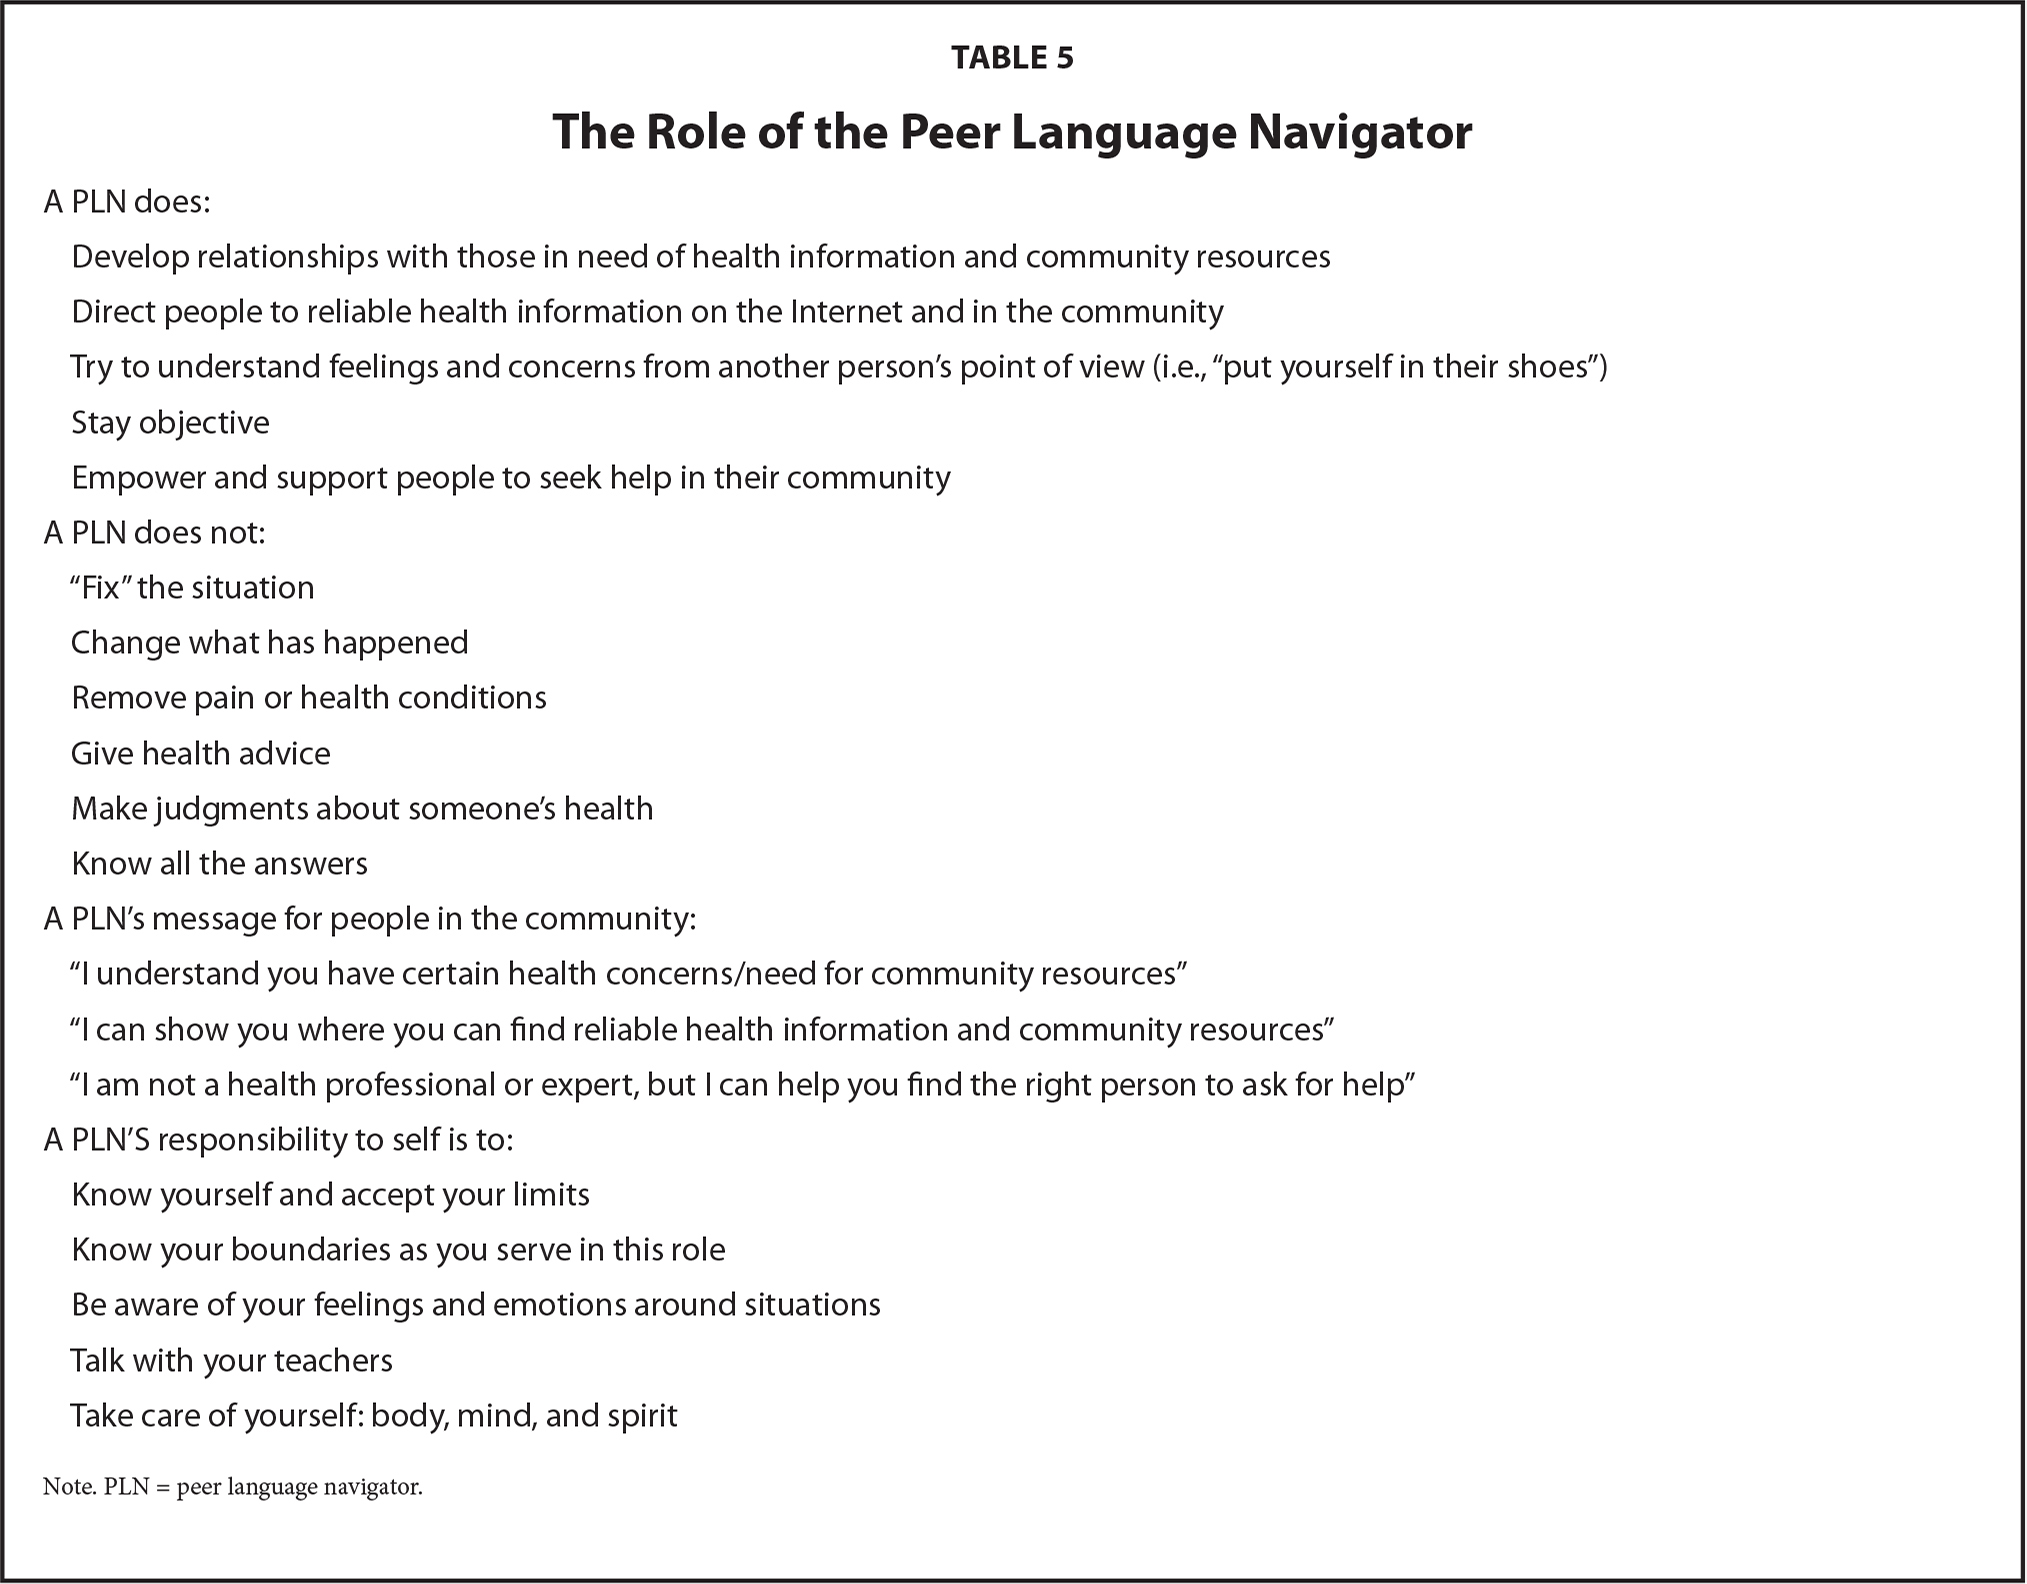 The Role of the Peer Language Navigator